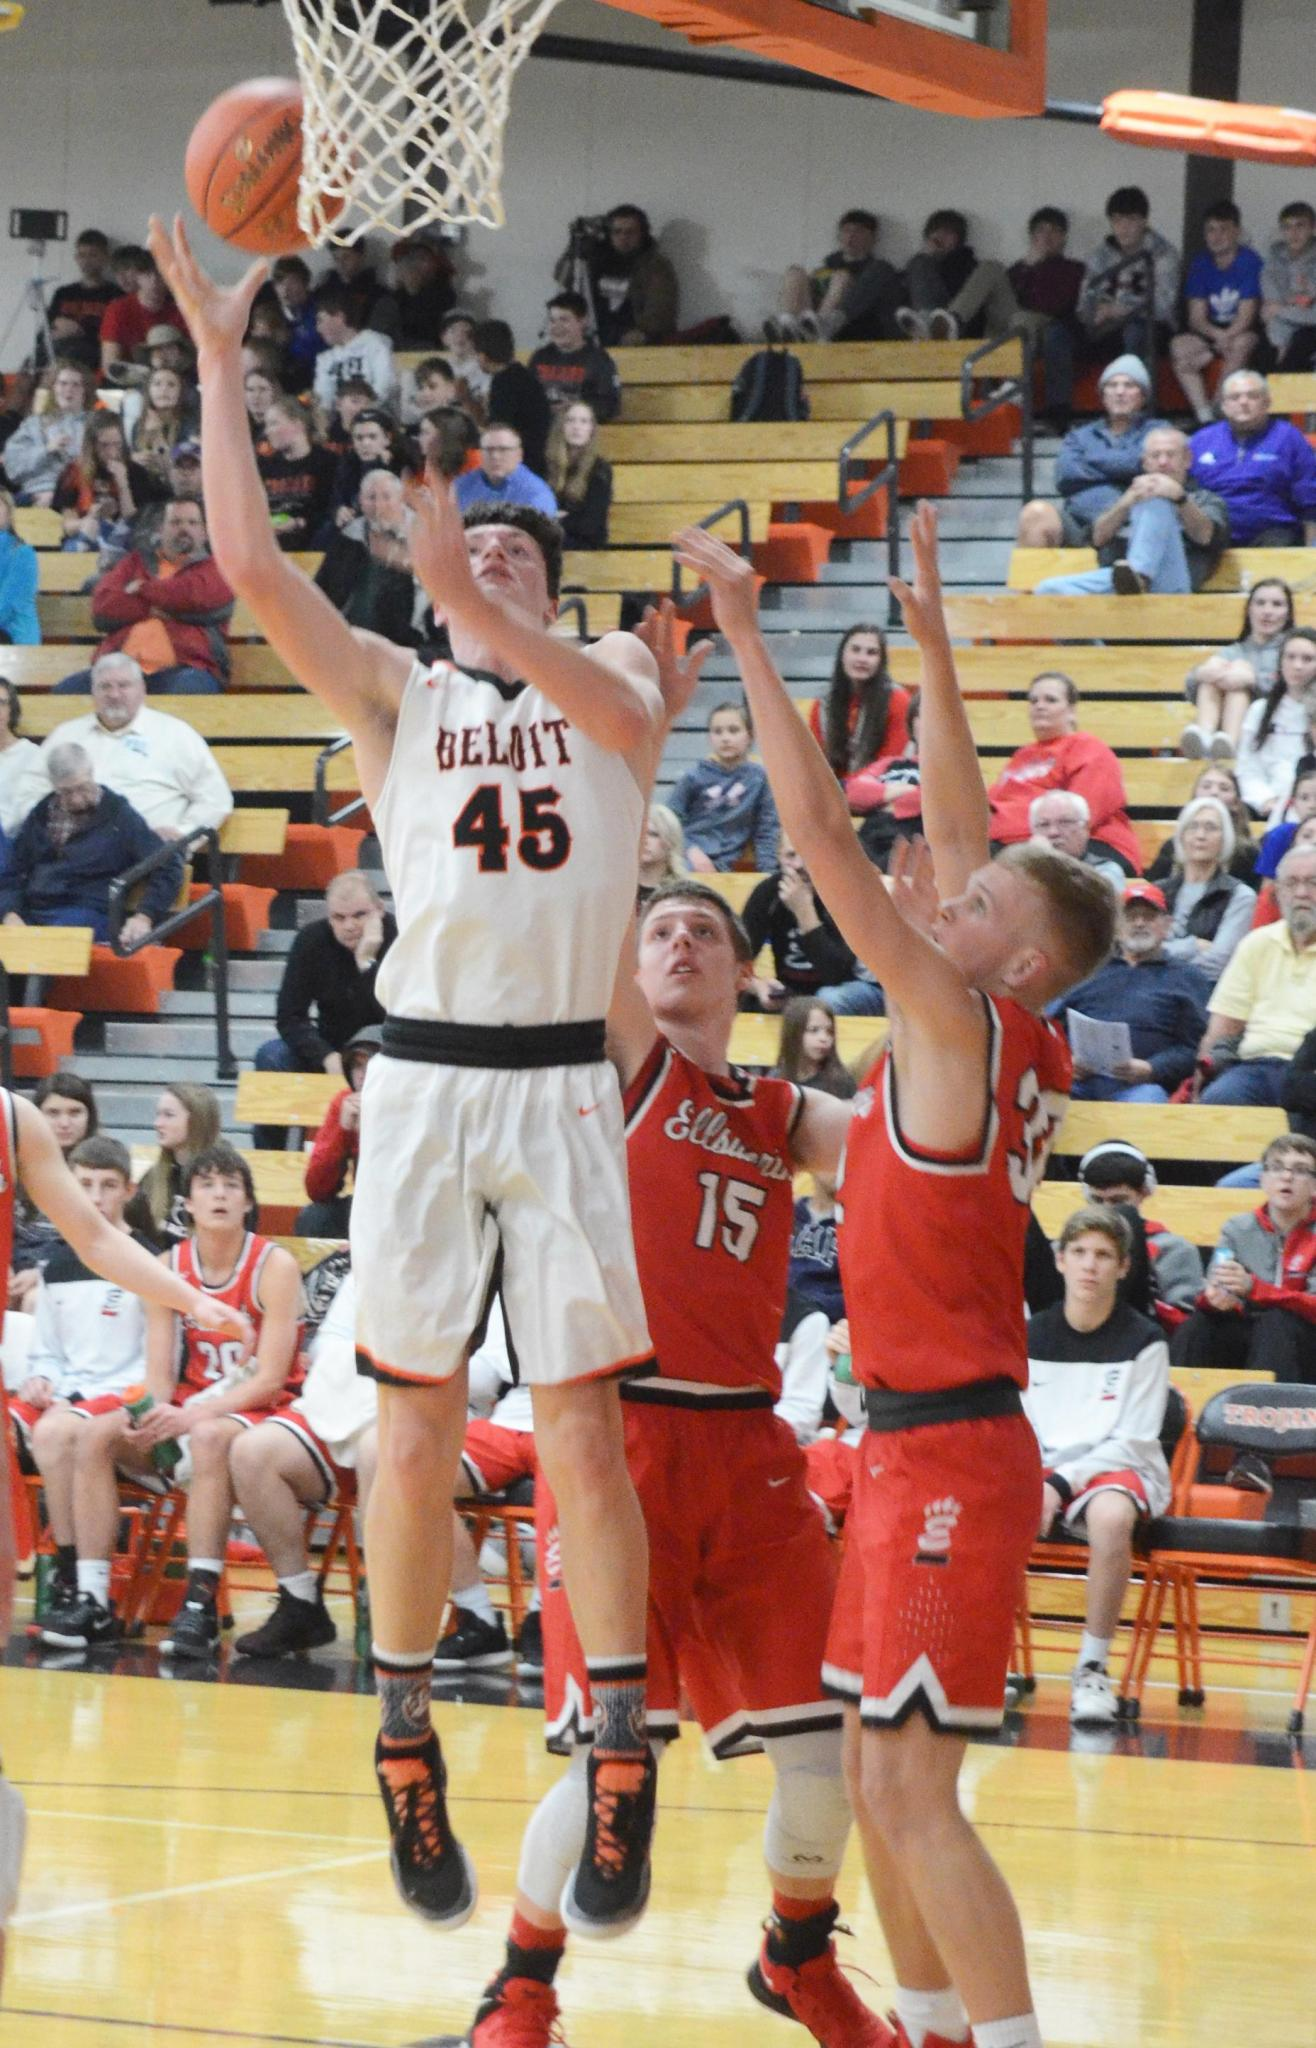 Beloit senior Bryce Mason No. 45 lands the shot for the Trojans in his 10 point, 8 rebound game against Ellsworth.